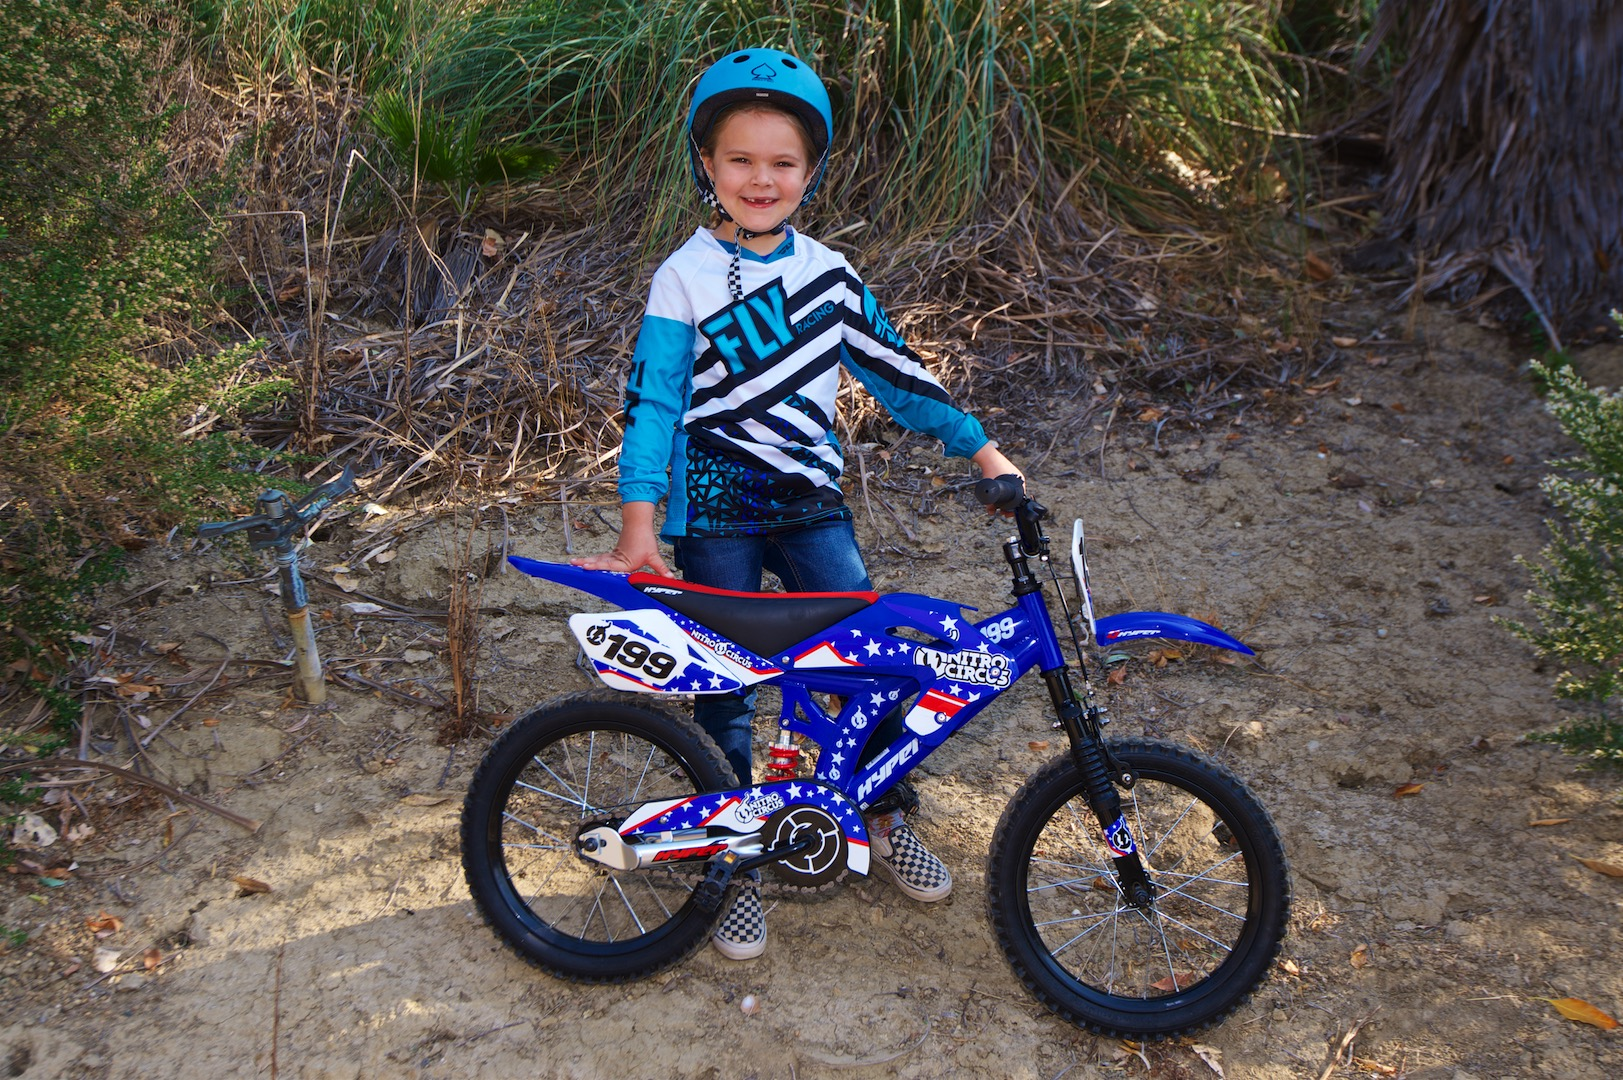 "Hyper 16"" Nitro Circus Motobike Kids' Bike for sale near me"